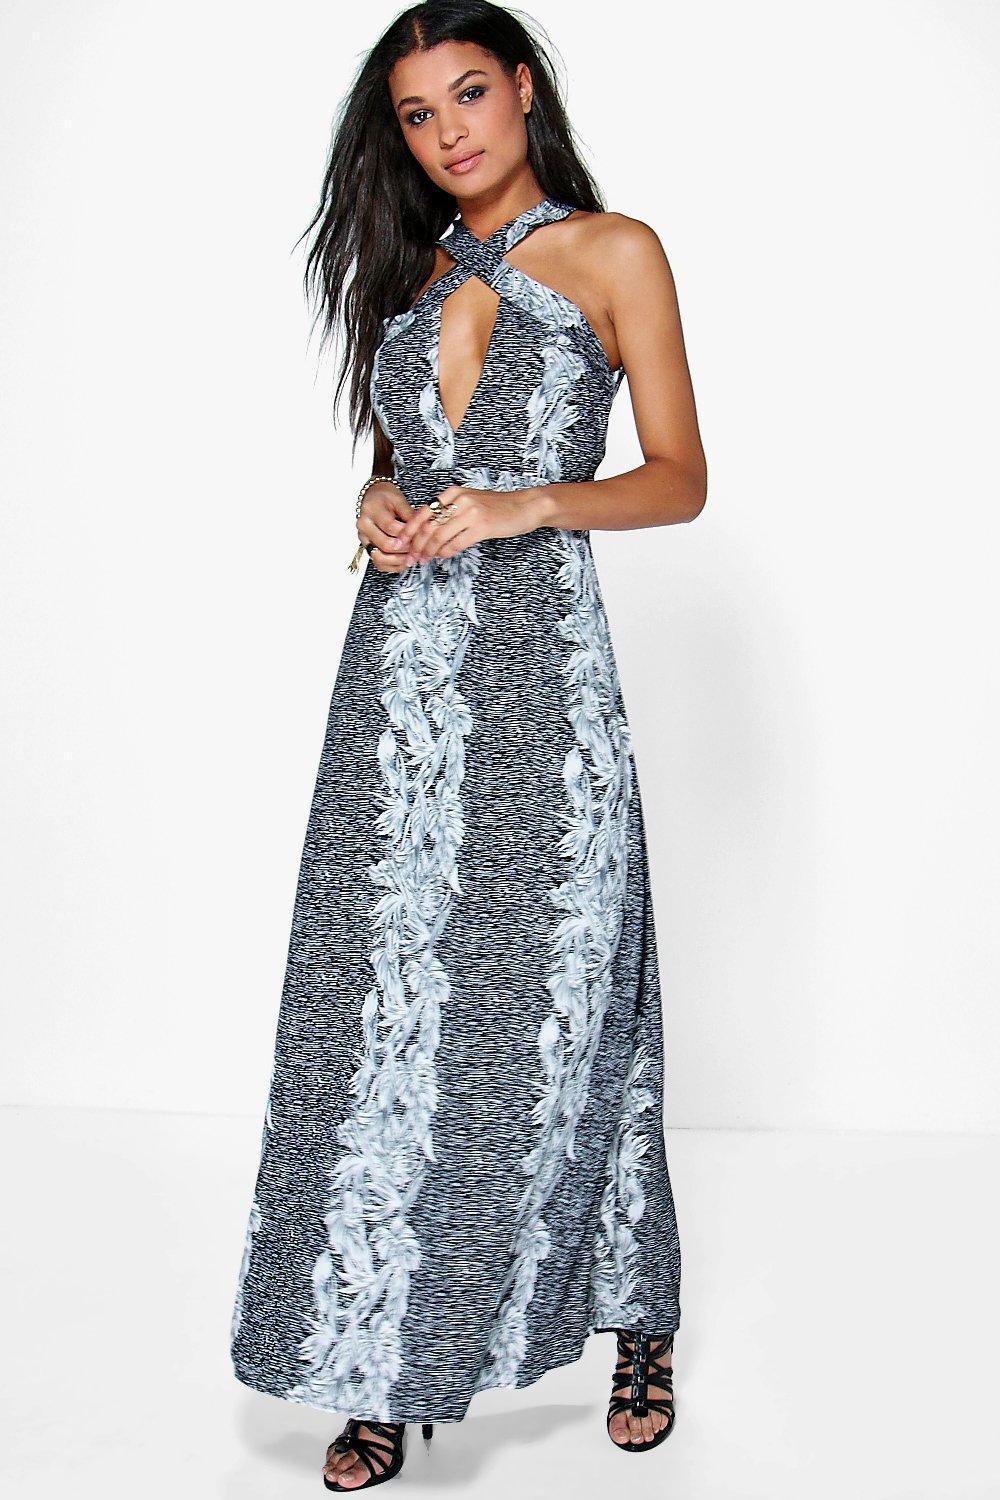 b38e9d7b124 Boohoo Kate Wrap Bodice Backless Floral Maxi Dress in Black - Lyst